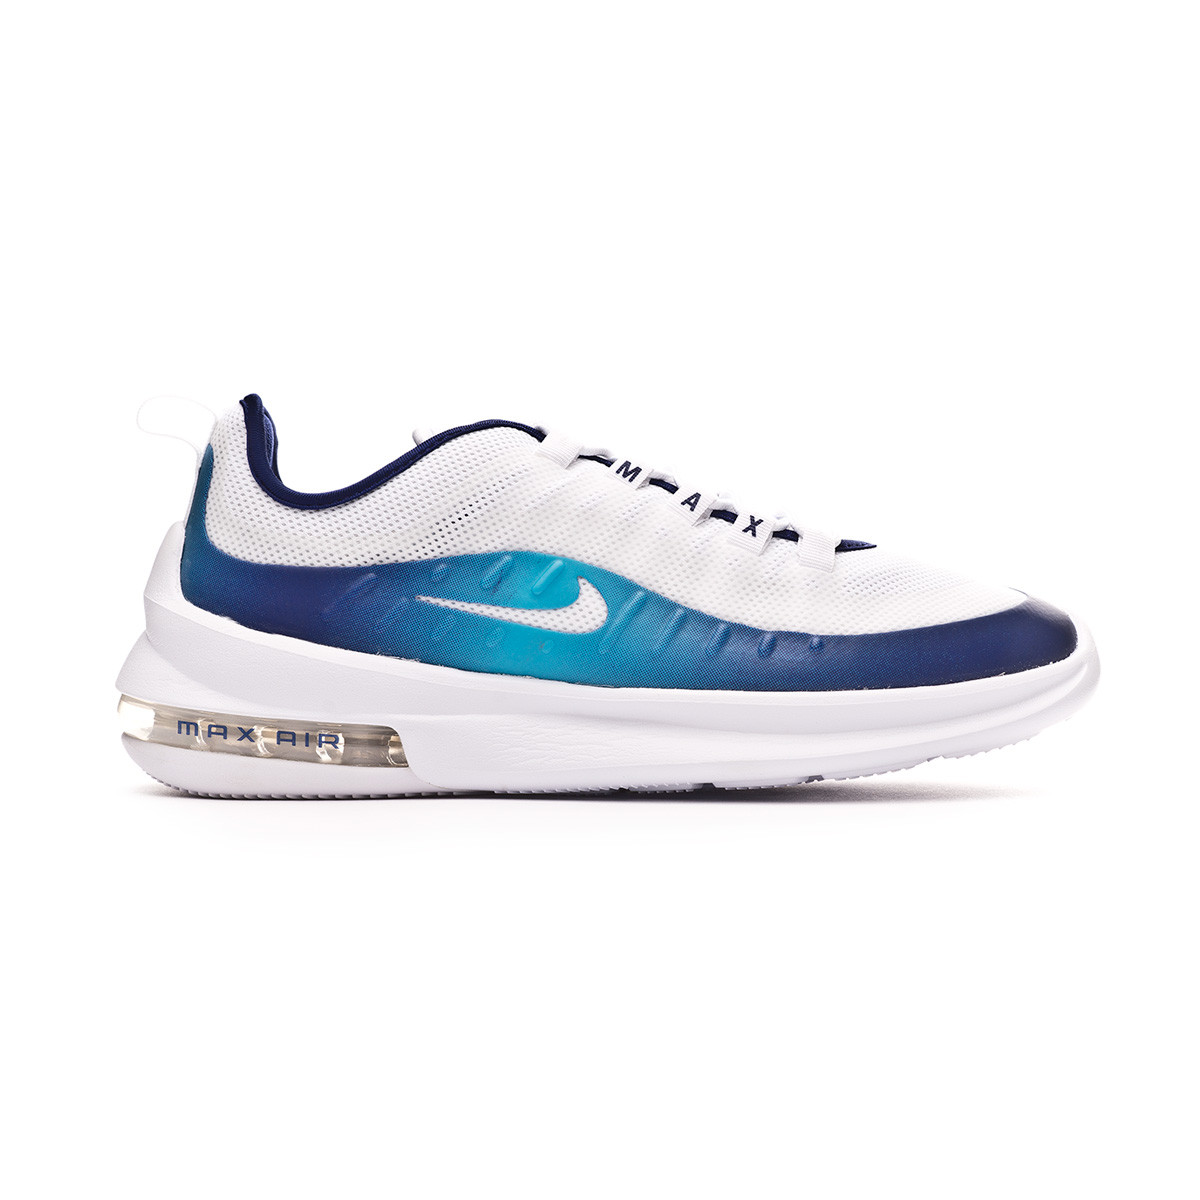 Zapatilla Air Max Axis Premium White Regendy purple Light blue fury